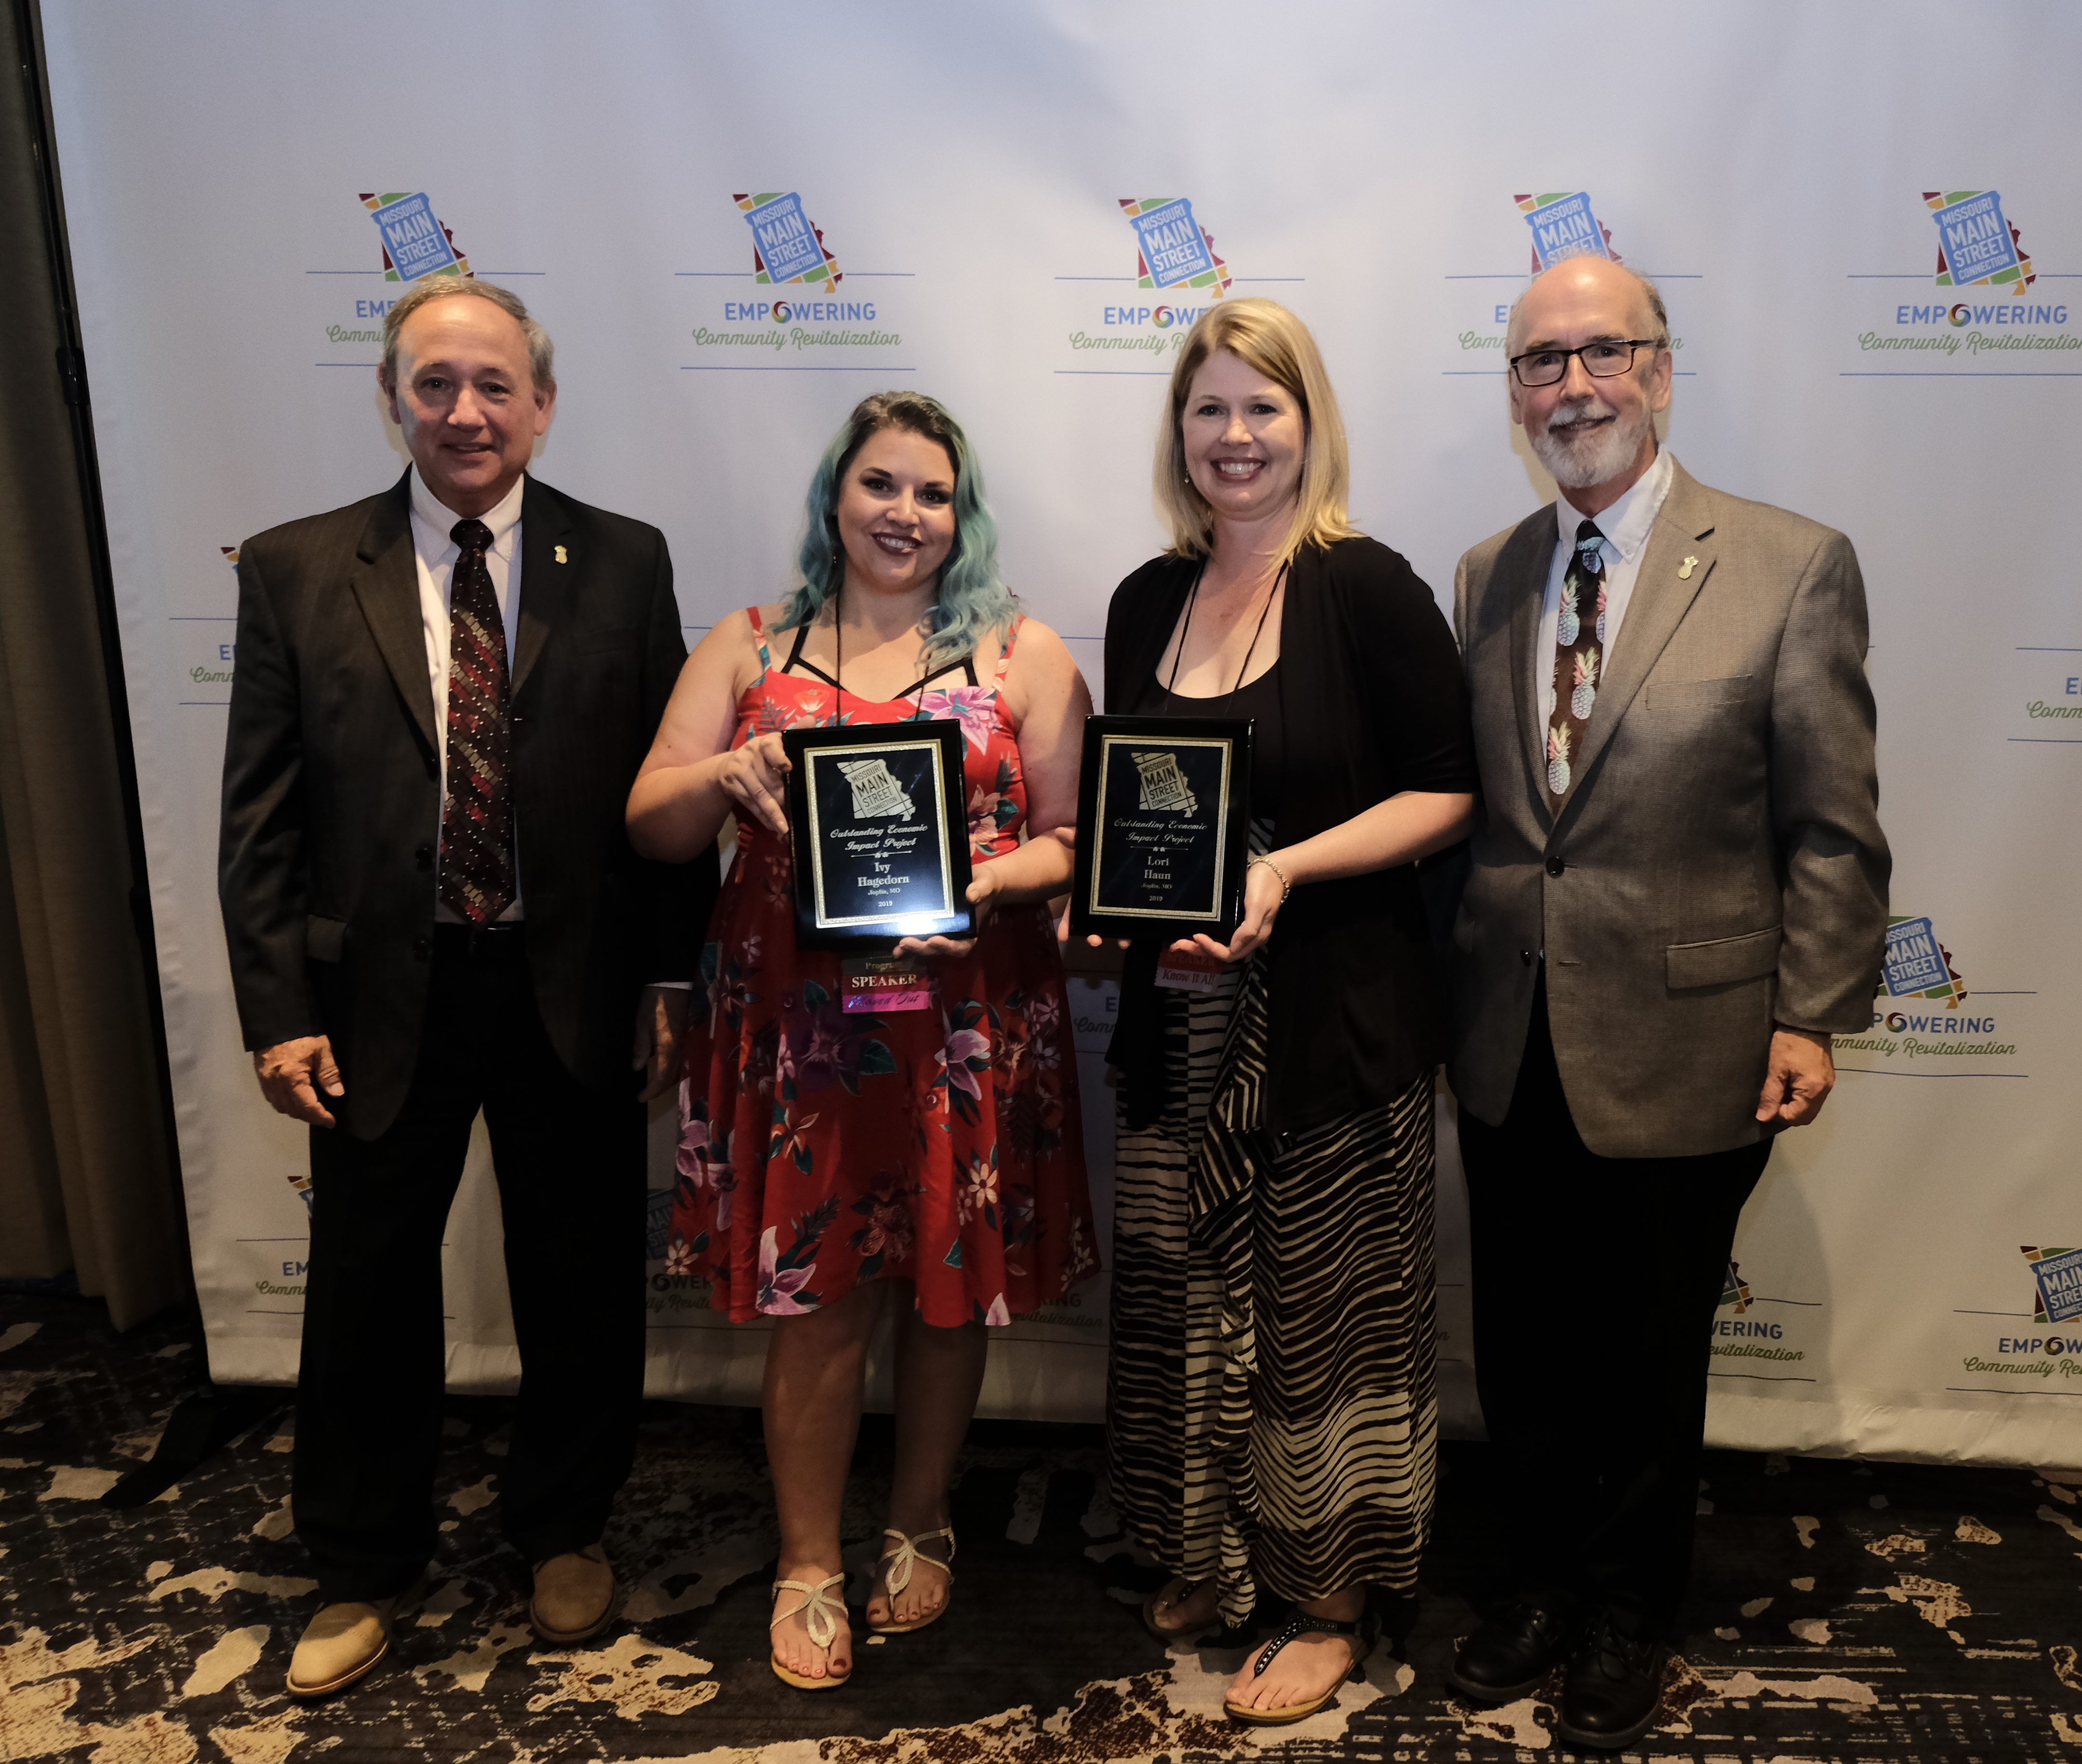 Image of Ivy Hagedorn and Lori Haun holding a Missouri Main Street Connection award